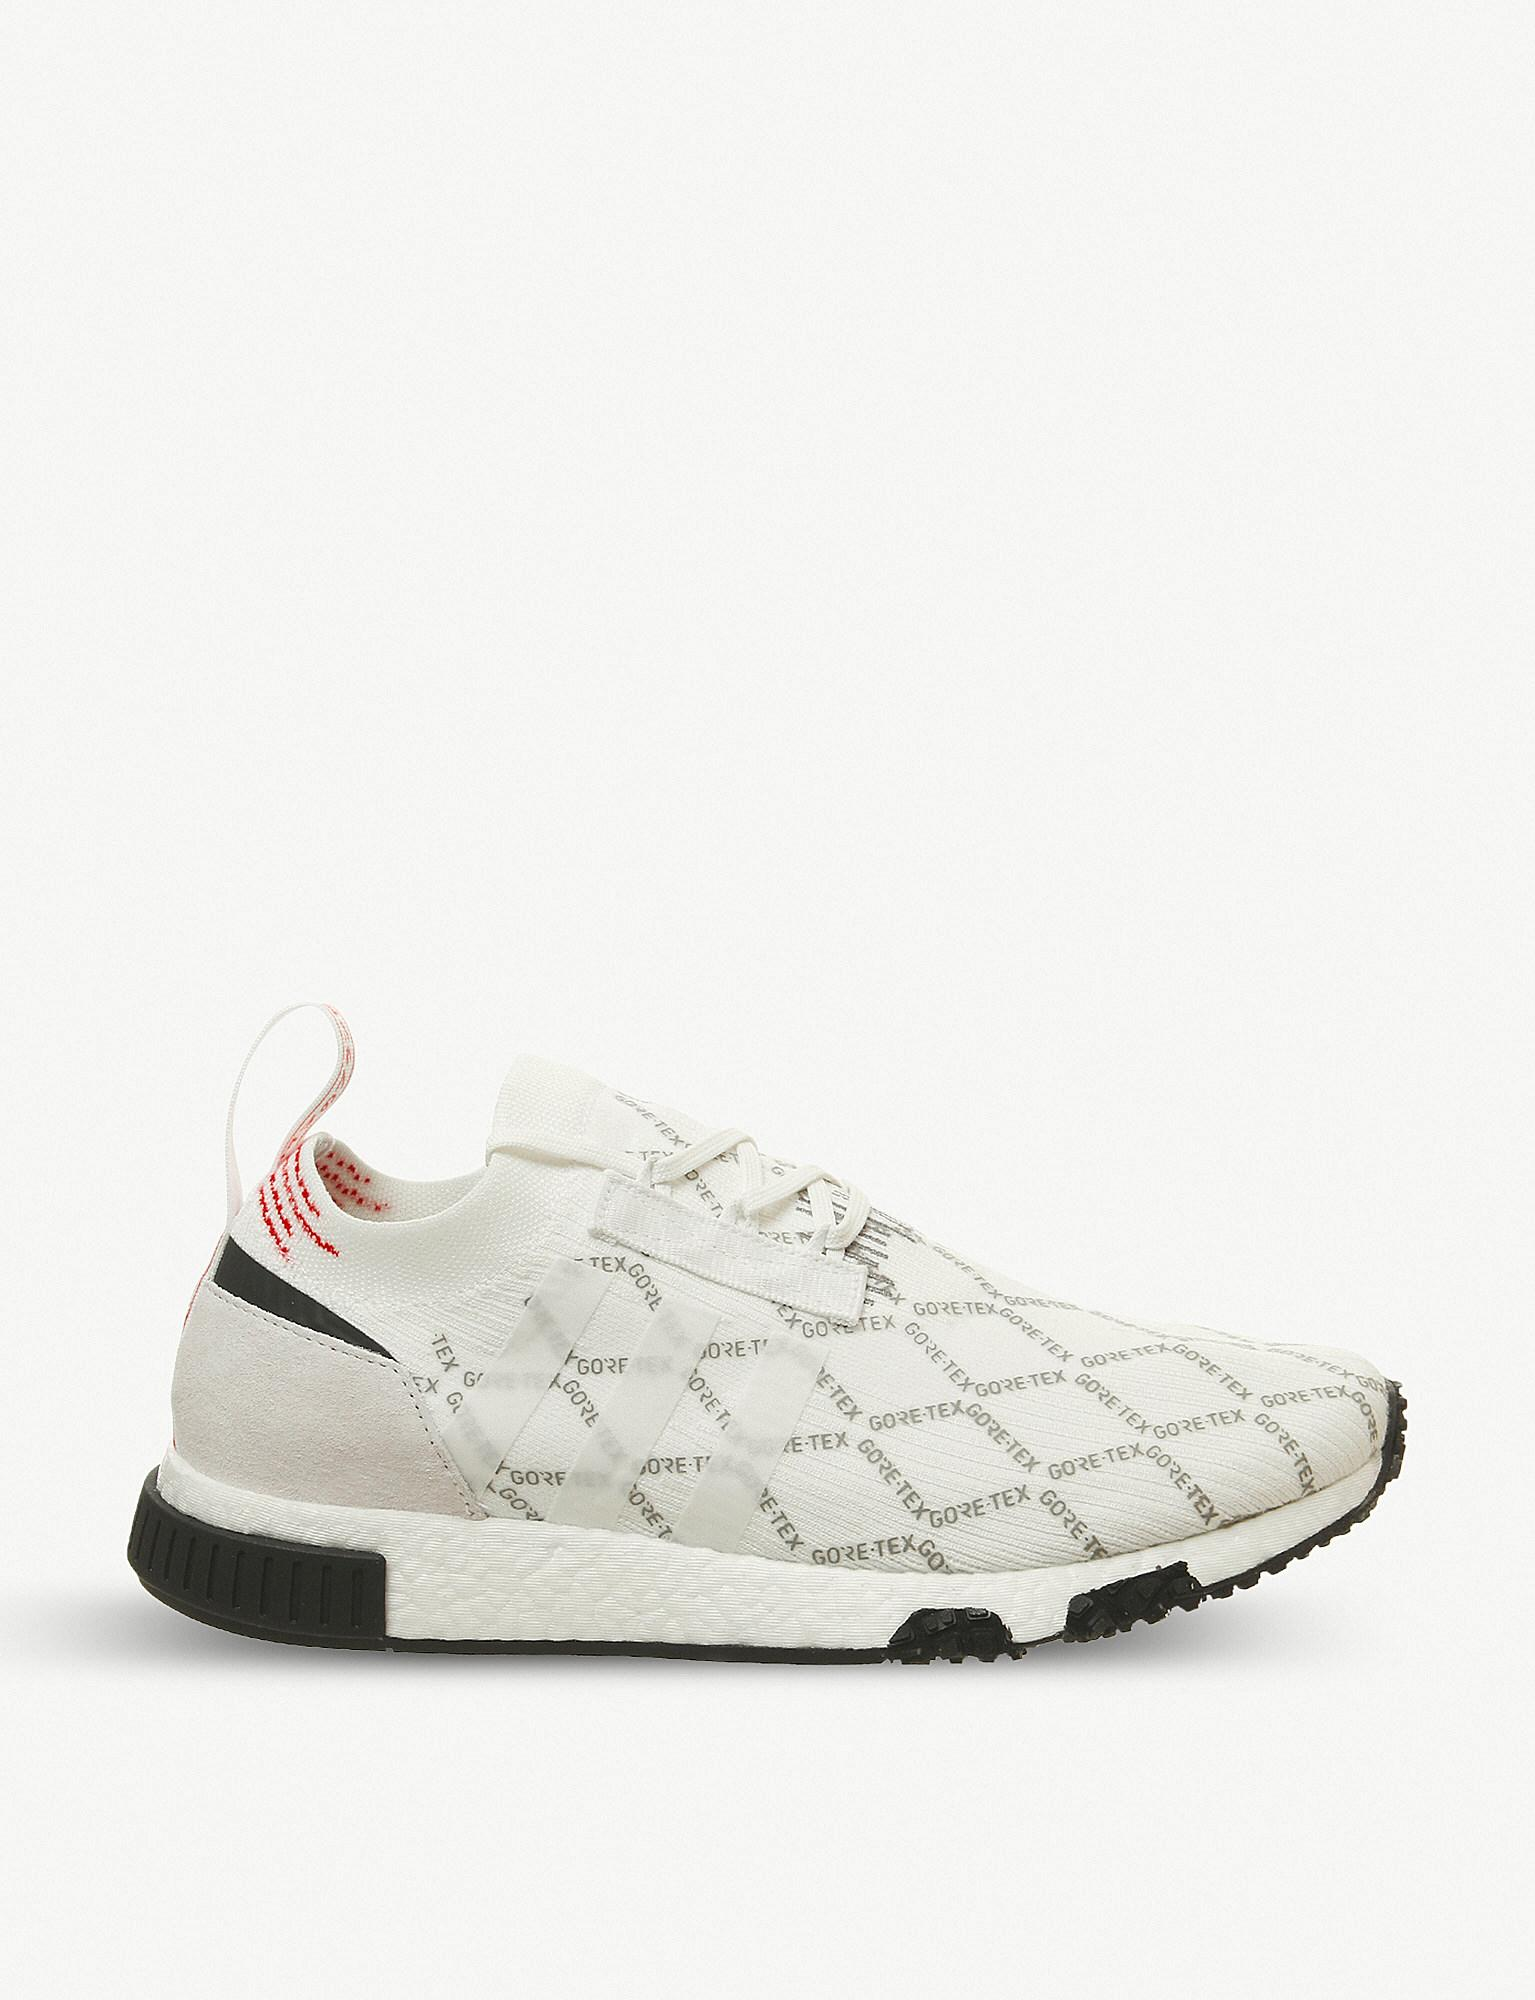 fdd443b51163 Lyst - adidas Nmd Racer Primeknit And Gore-tex Trainers in White for Men